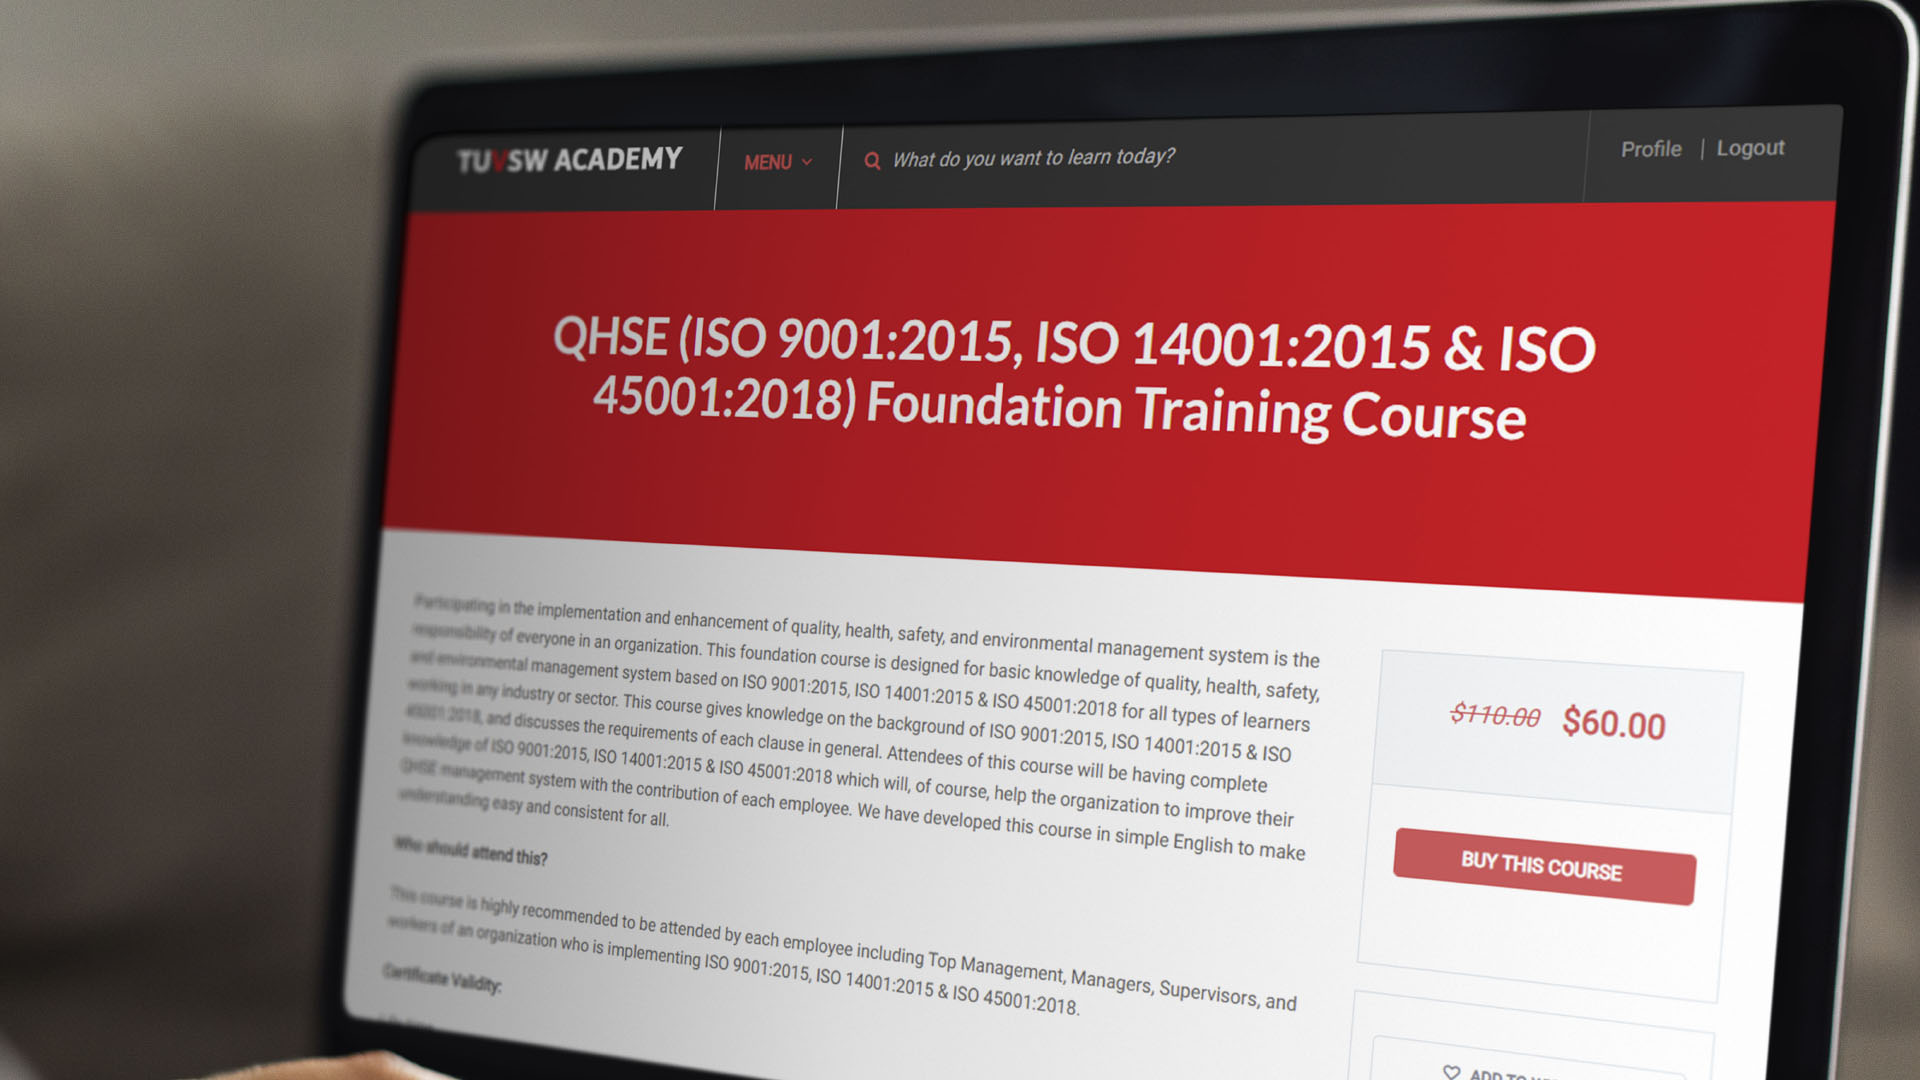 QHSE (ISO 9001:2015, ISO 14001:2015 & ISO 45001:2018) Foundation Training Course